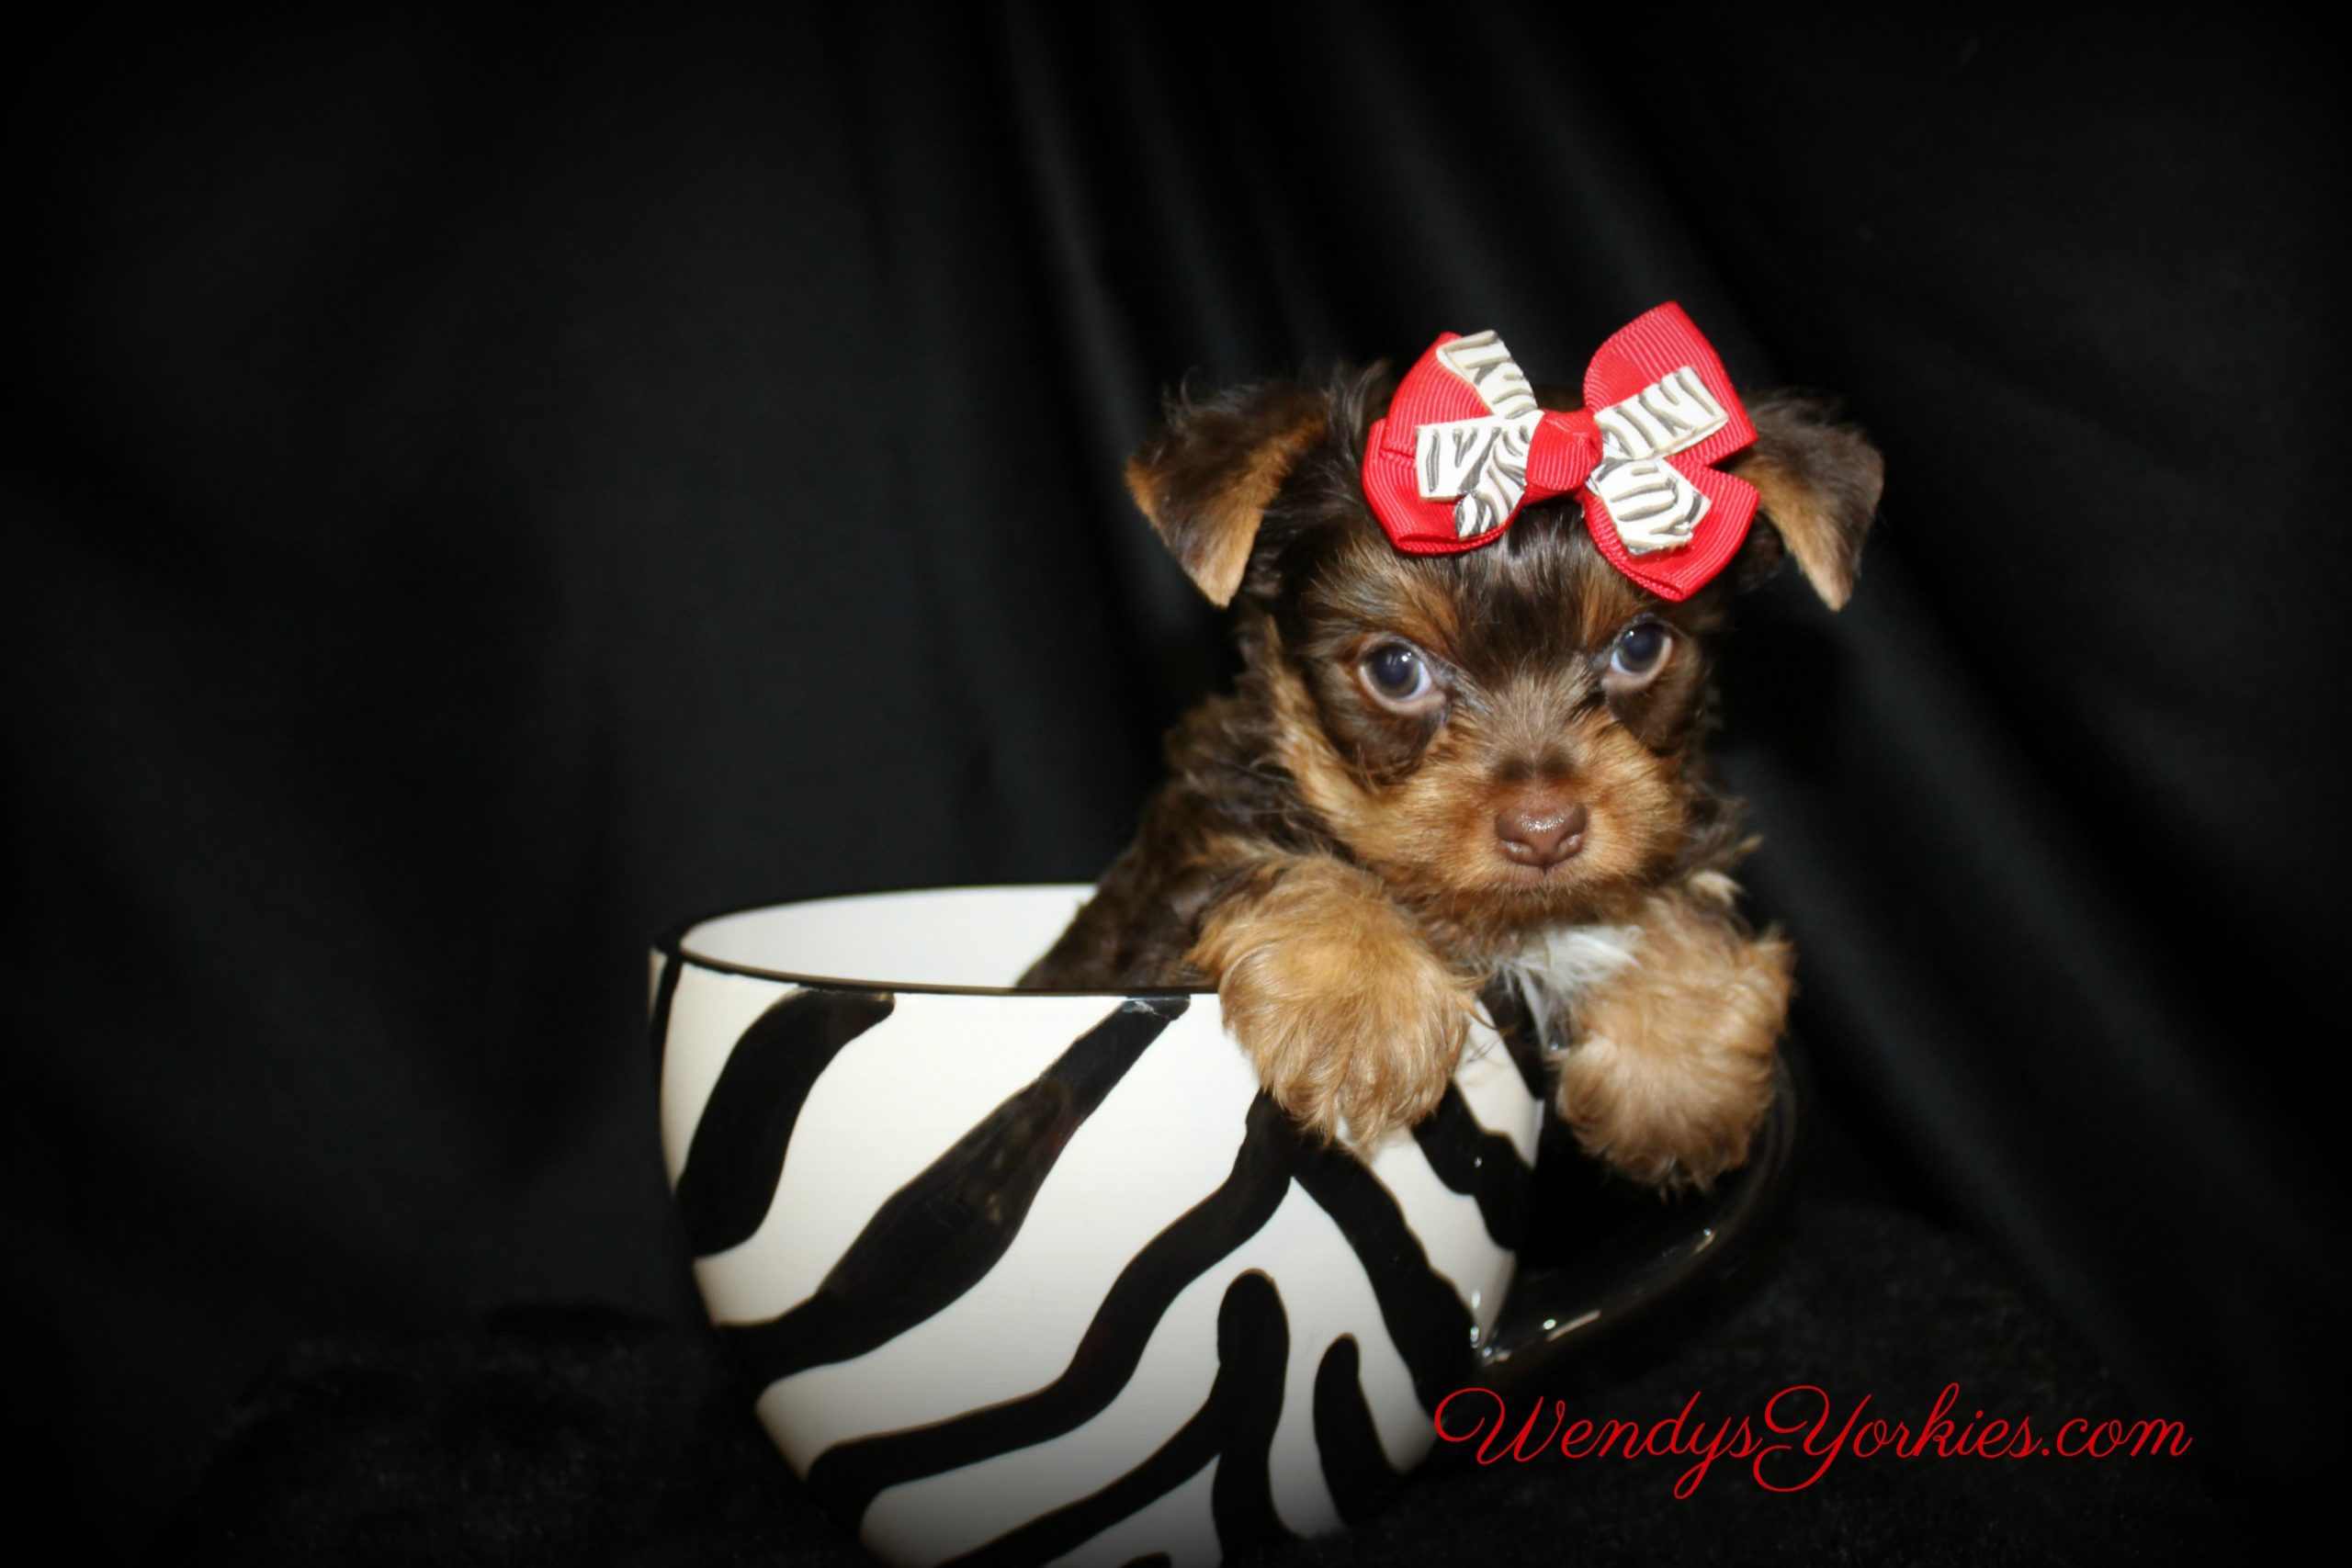 Chocolate Yorkie puppy for sale, Kimber, WendysYorkies.com